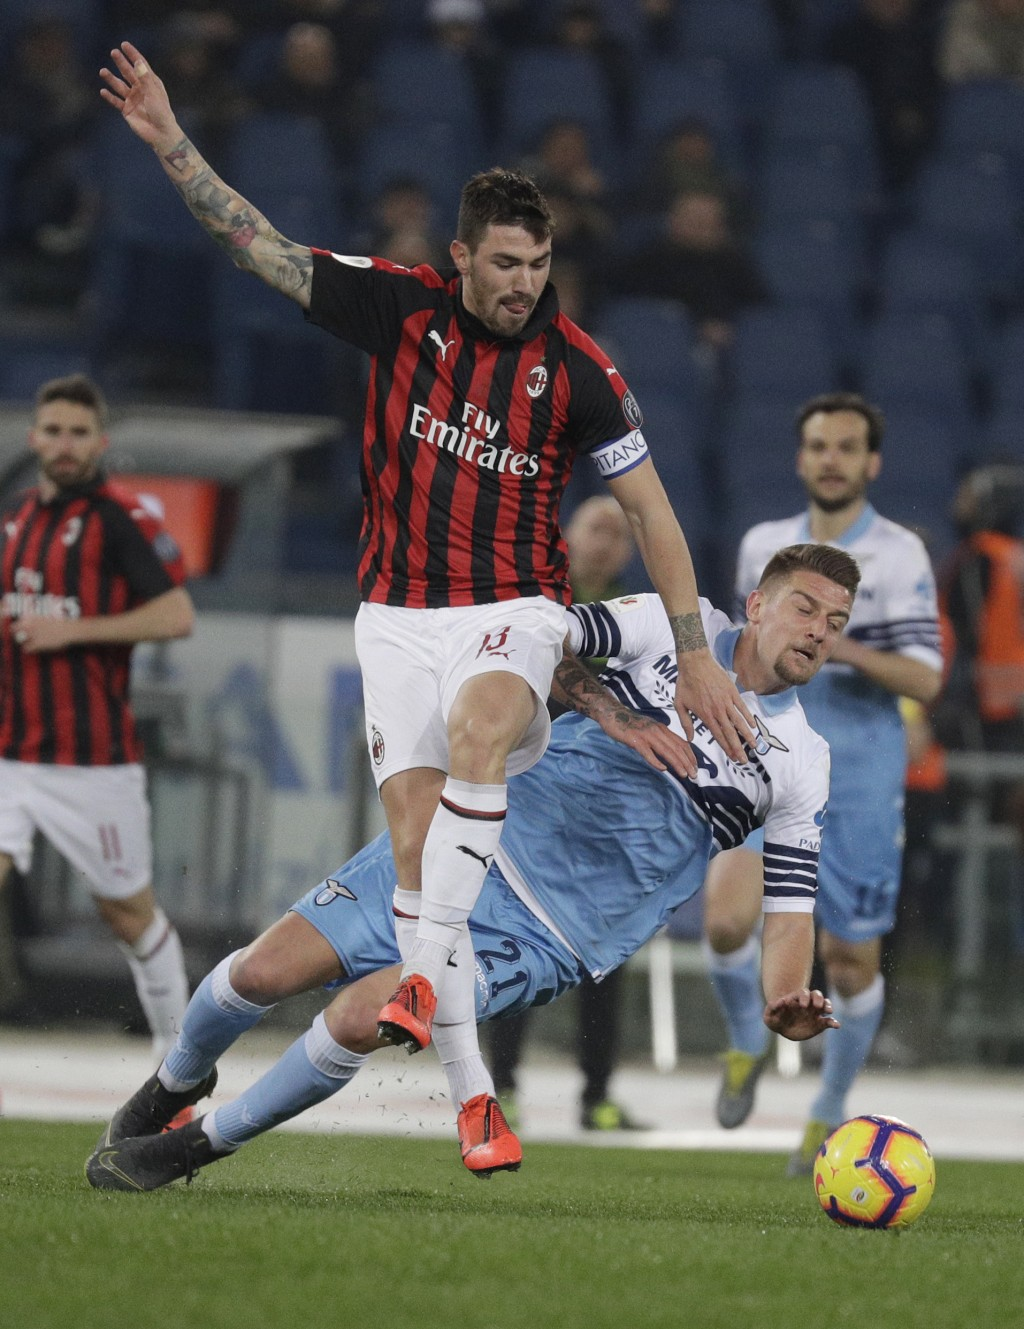 FILE - In this Tuesday, Feb.26, 2019 filer, Lazio's Sergej Milinkovic-Savic, right is tackled by AC Milan's Alessio Romagnoli during the Italian Cup,